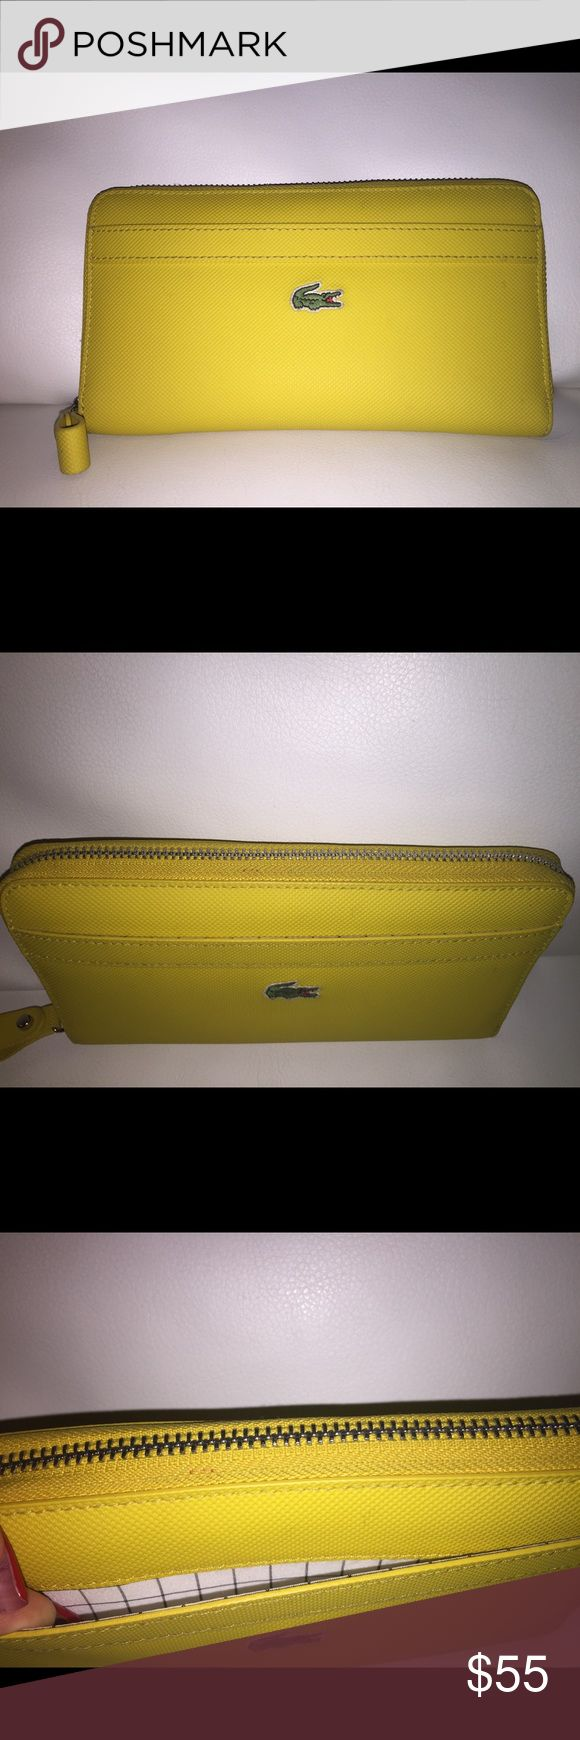 Lacoste continental zip yellow wallet Lacoste pvc continental zip wallet, gently used. So many compartments. Zipper functions properly. Miner specks as shown in pics. Six card slots, six flap compartments, one coin zip, exterior flap and comes with original box of purchase. Lacoste Bags Wallets